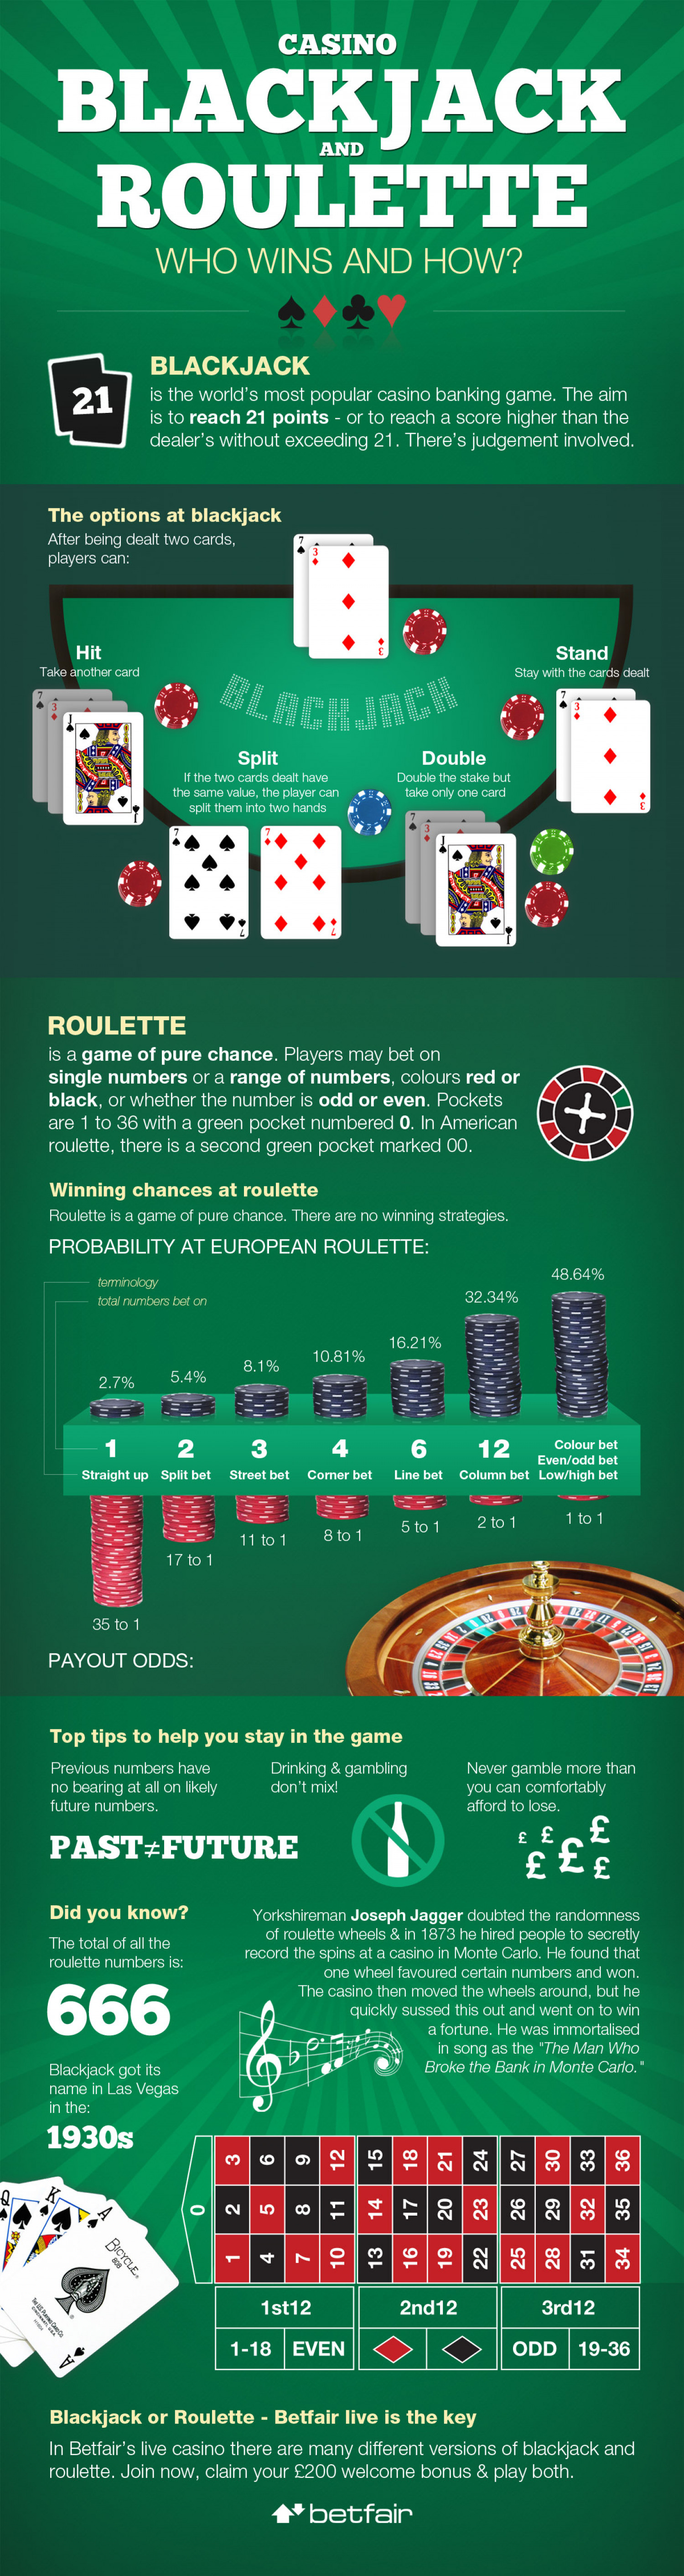 Casino Blackjack and Roulette: Who Wins and How? Infographic